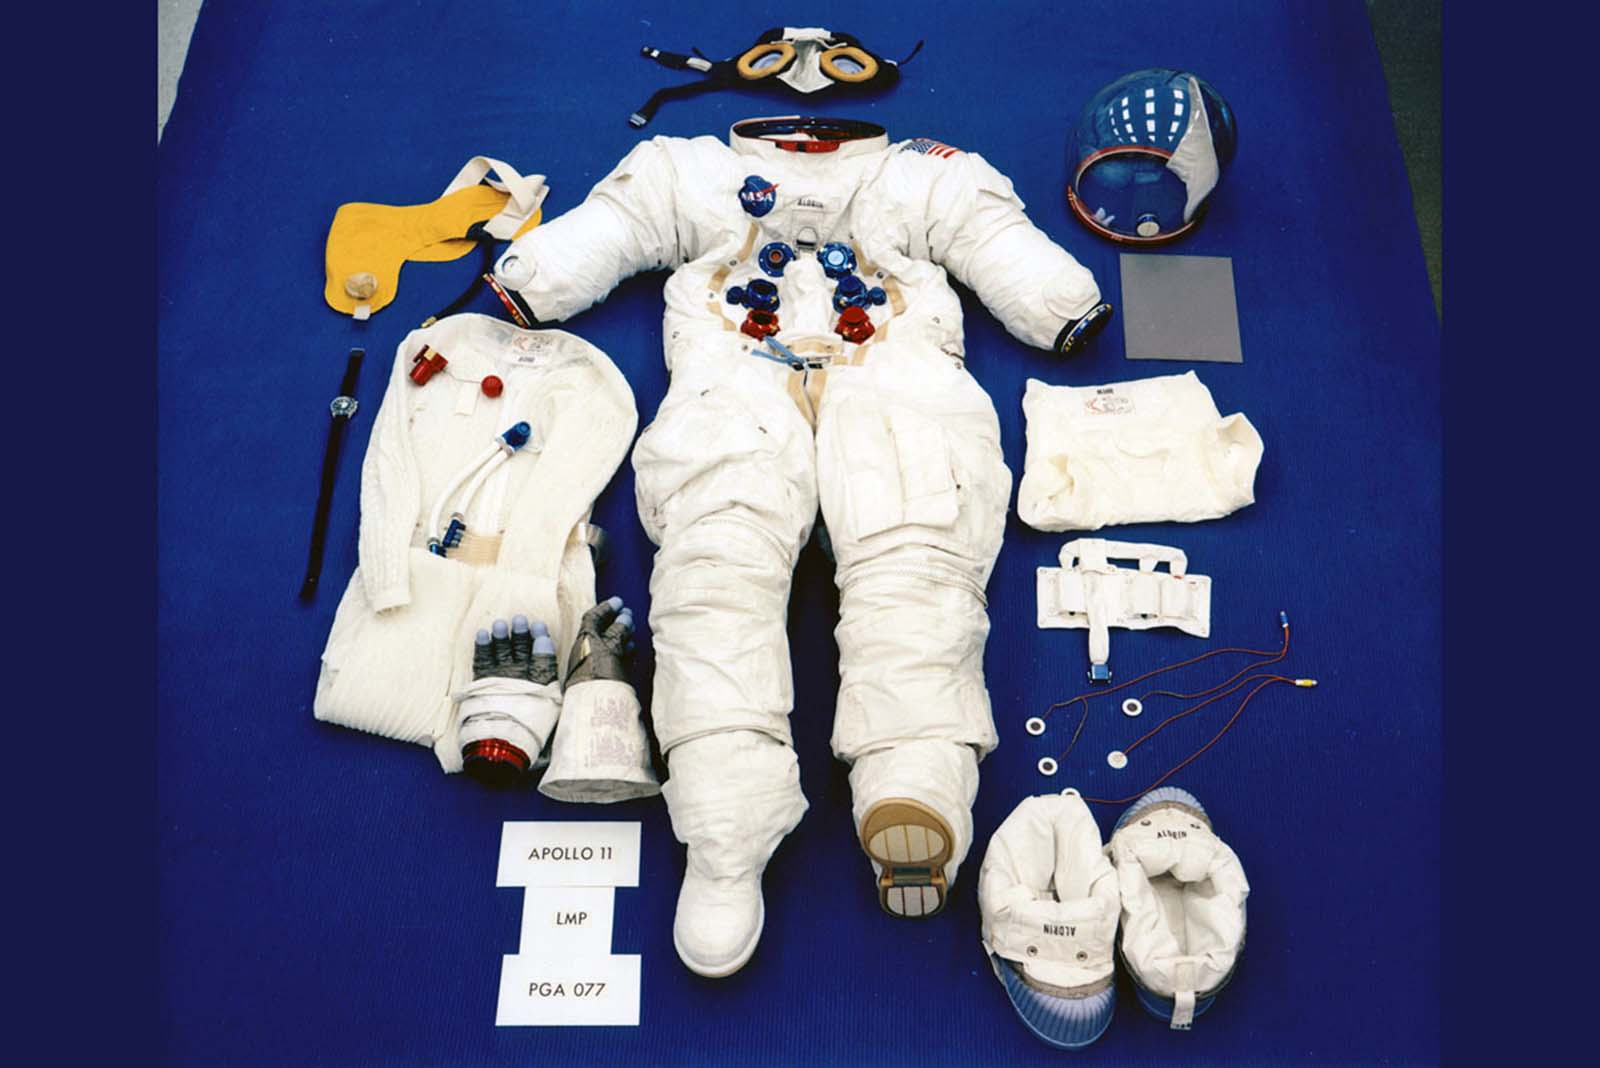 A preflight photo shows Buzz Aldrin's suit laid out in its lunar-surface configuration.